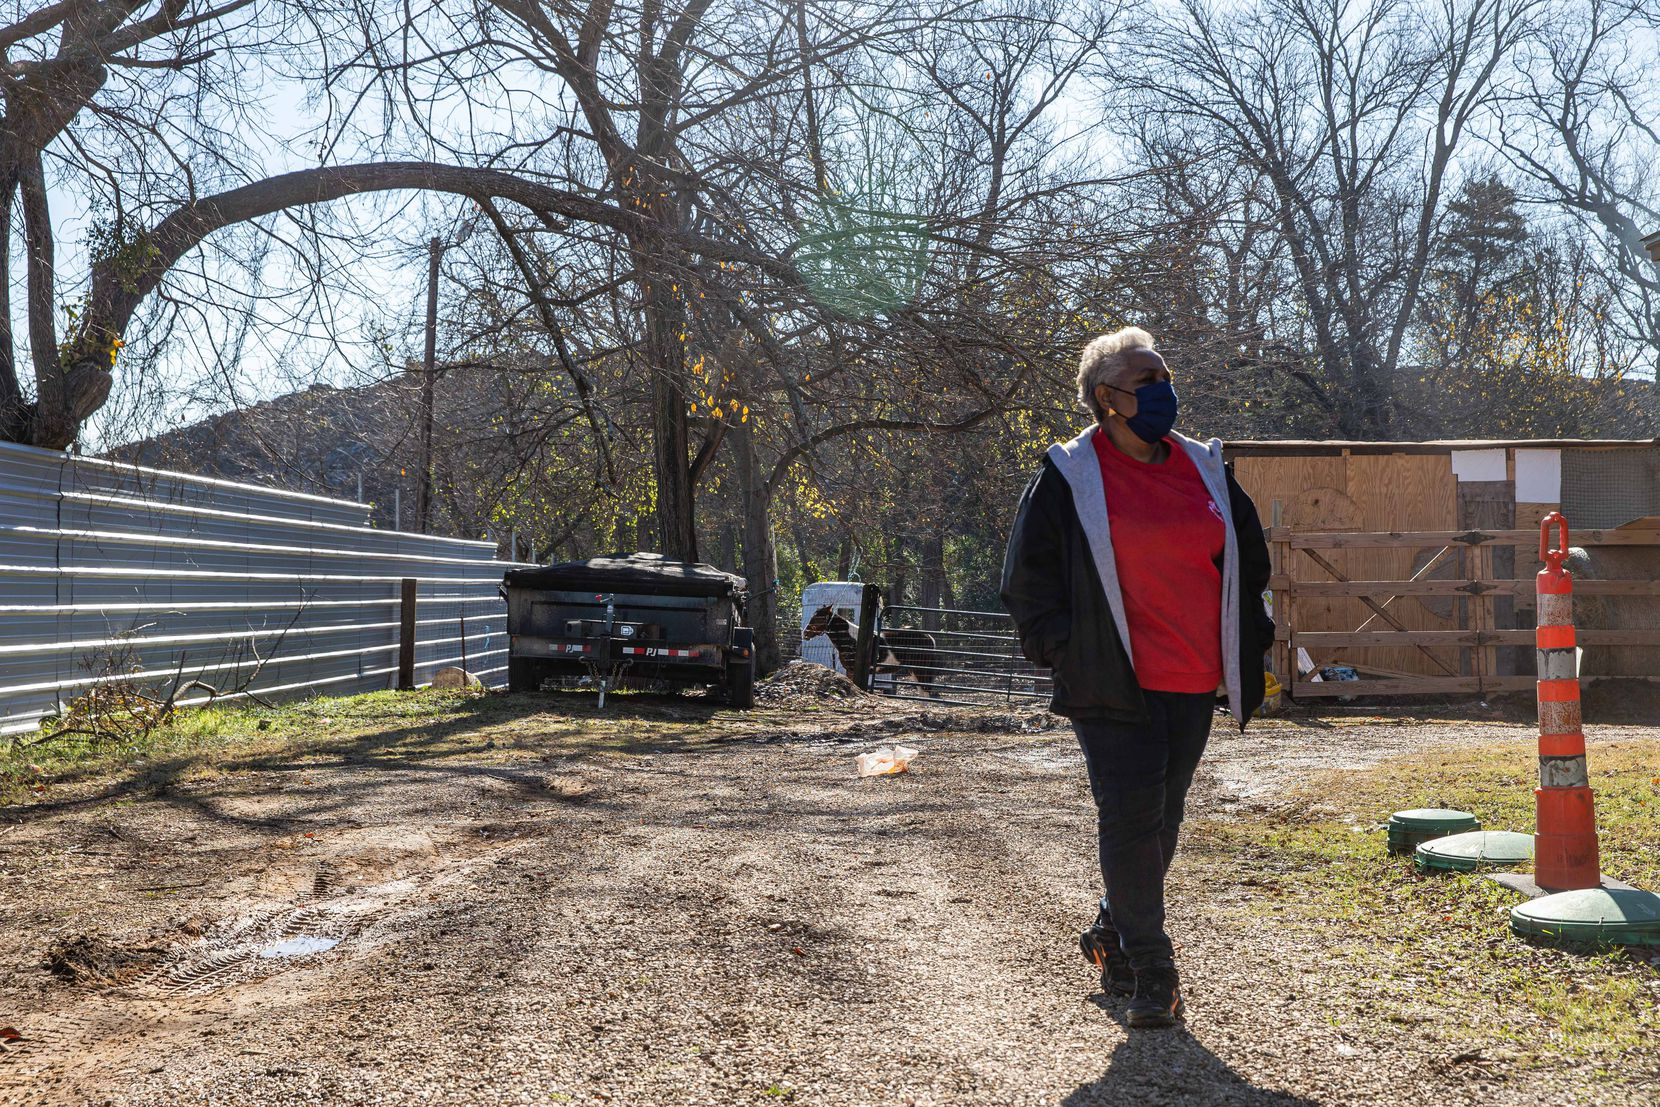 Marsha Jackson discussed the removal of Shingle Mountain in mid-December.